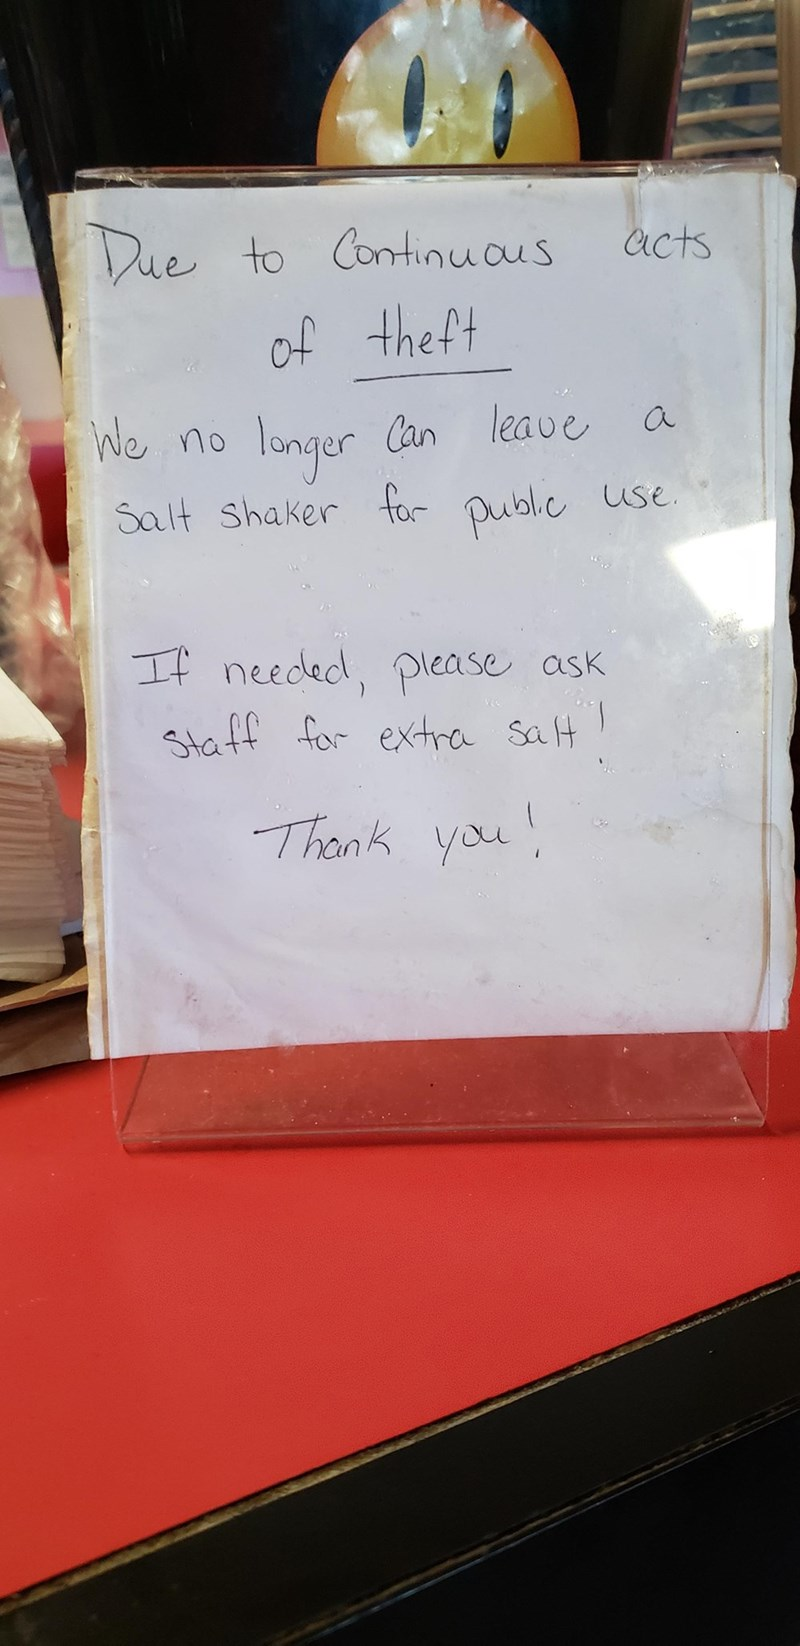 Text - Due to Continuaus Acts of theft longer Salt shaker for public use We no Can leave a If needed, please ask Staff for extra salt Thank you!